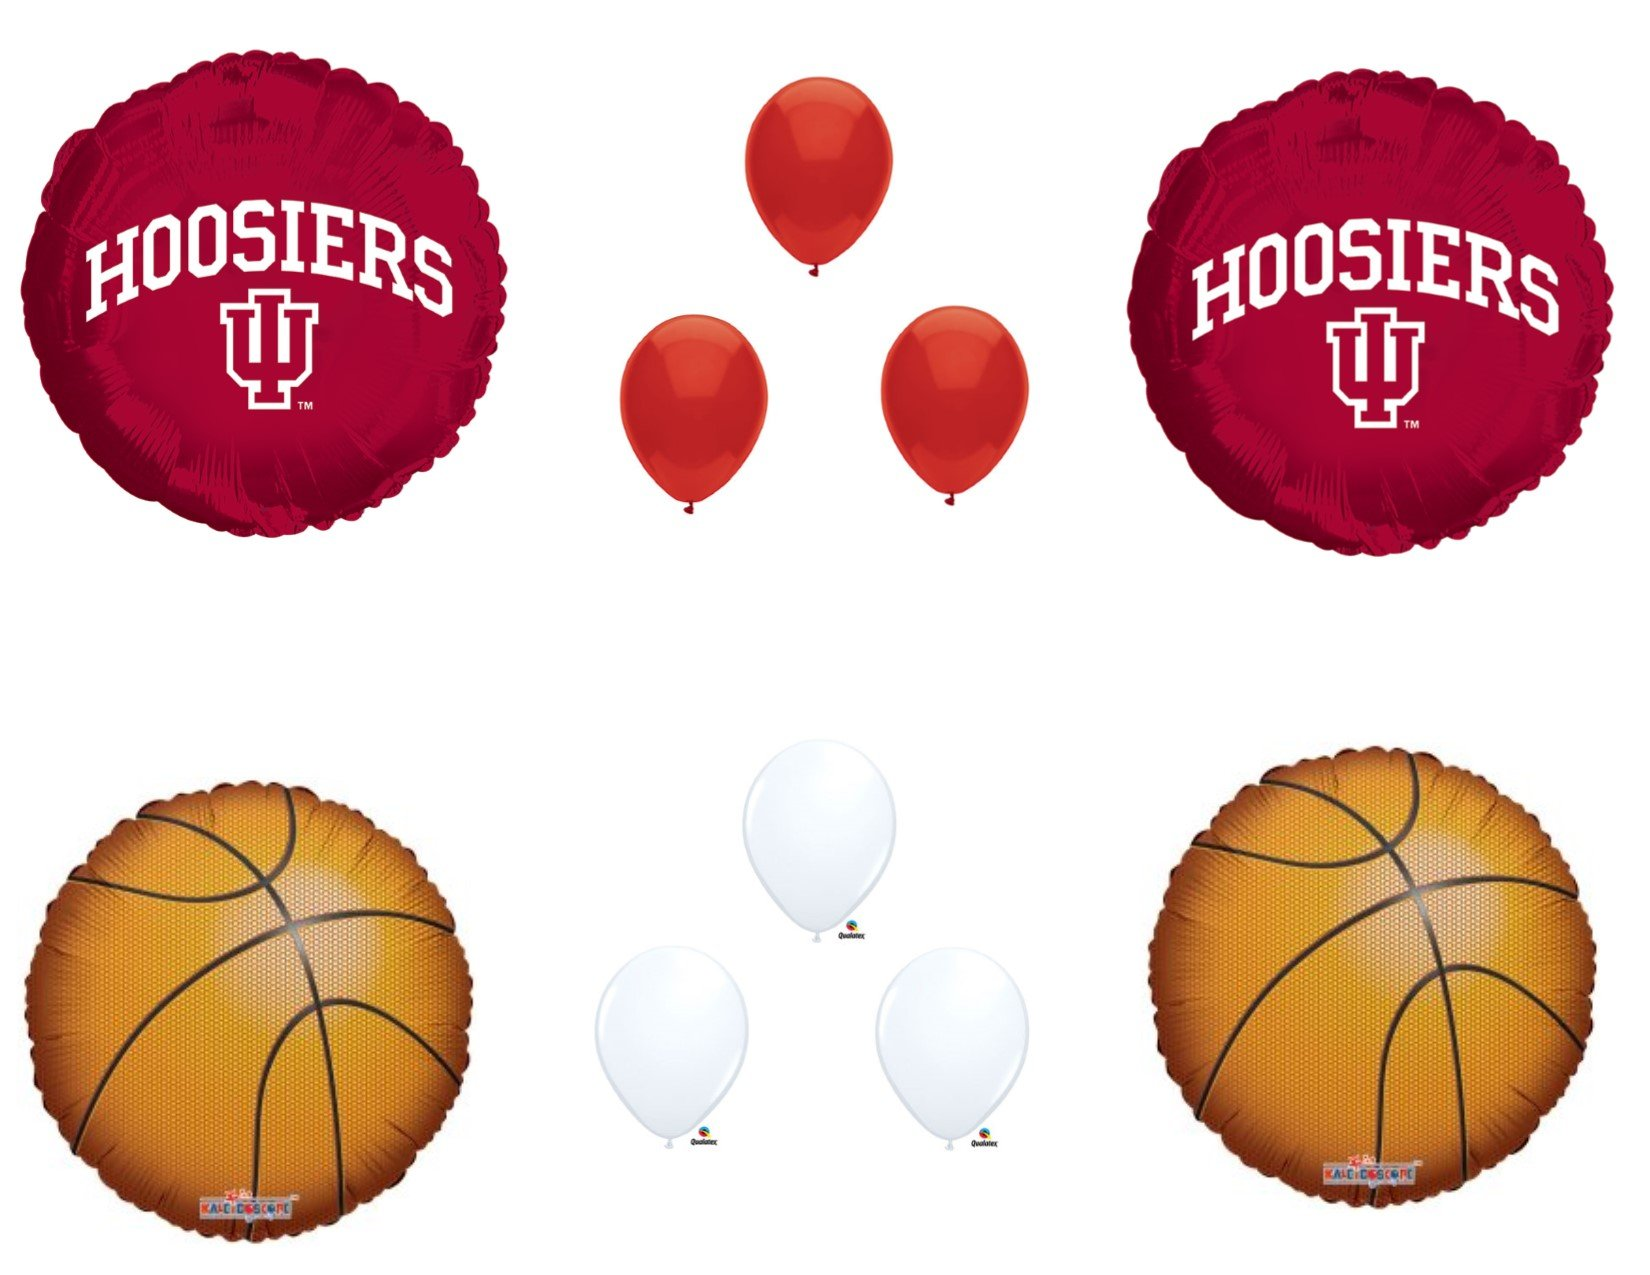 INDIANA HOOSIERS Basketball Game Day Birthday Party Balloons Decorations Supplies College University